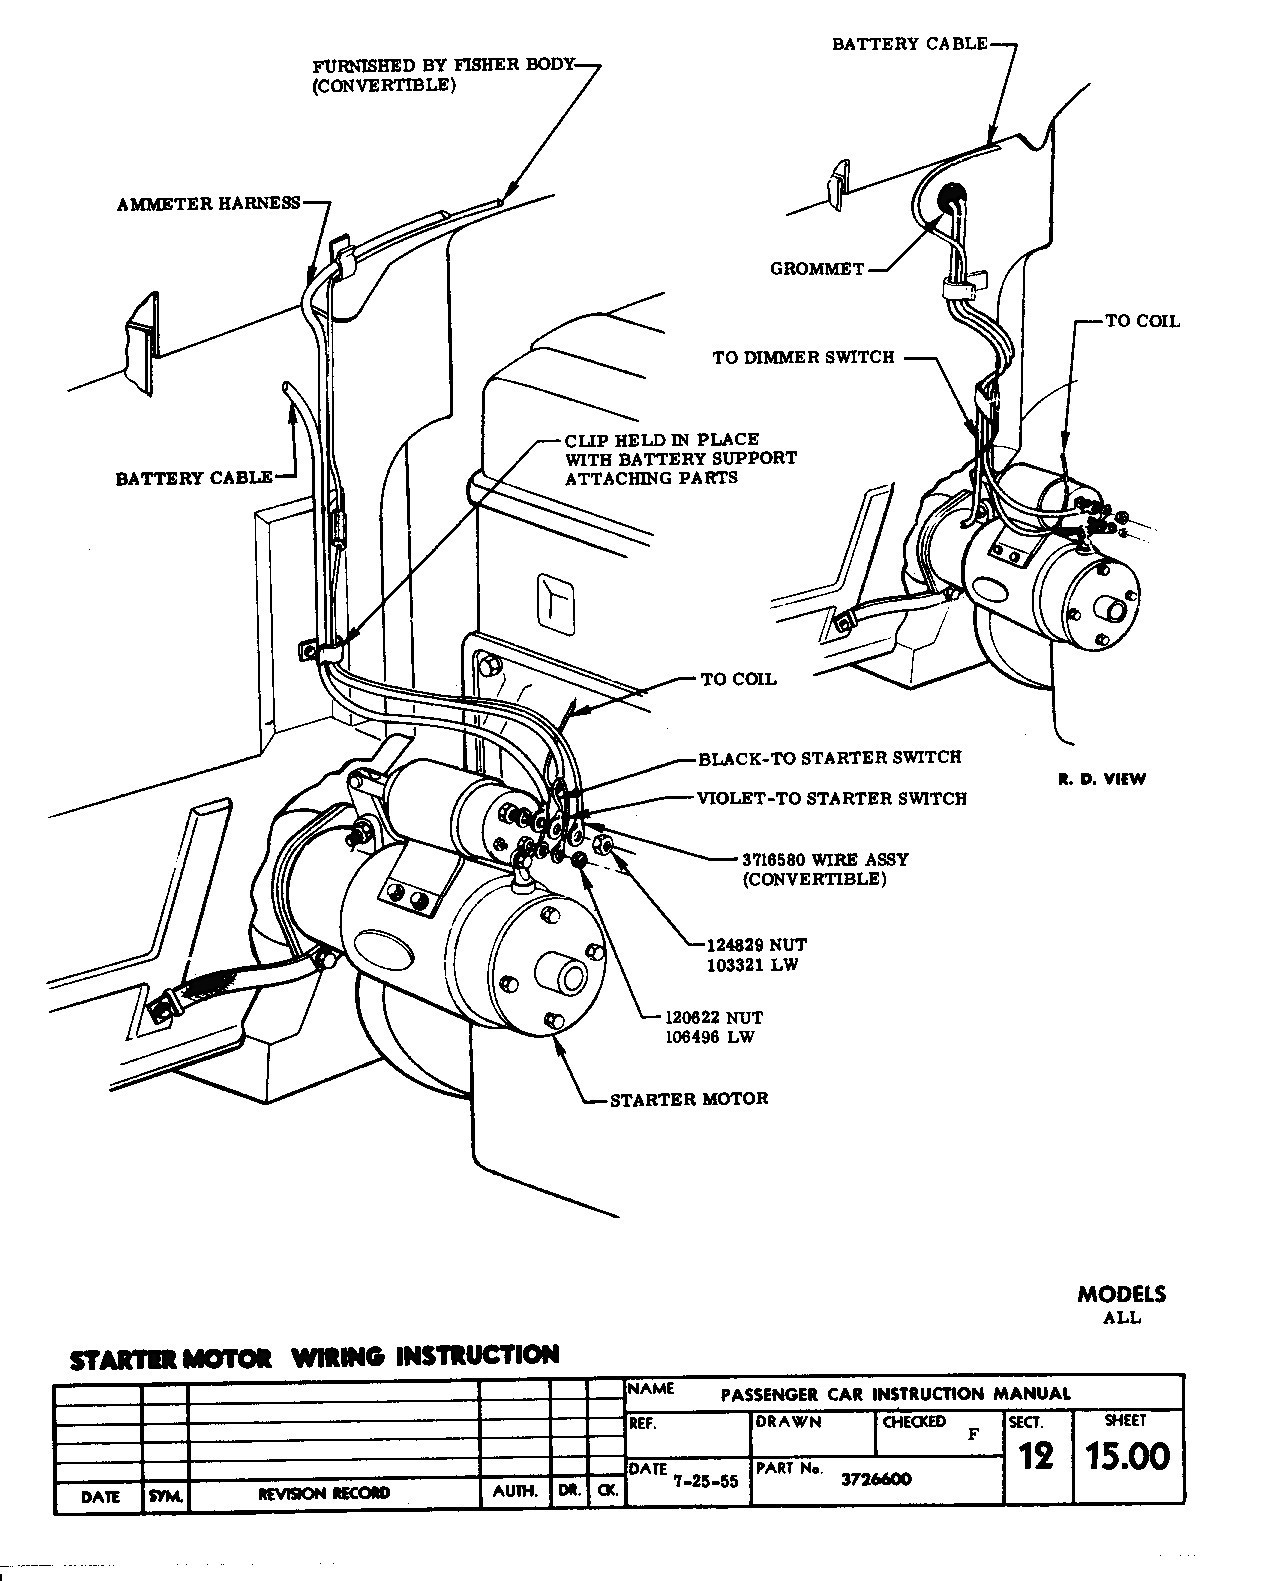 2004 Mazda Tribute Engine Diagram Rx8 Rx 8 Wiring 323 Bg Diagrams Instructions Of